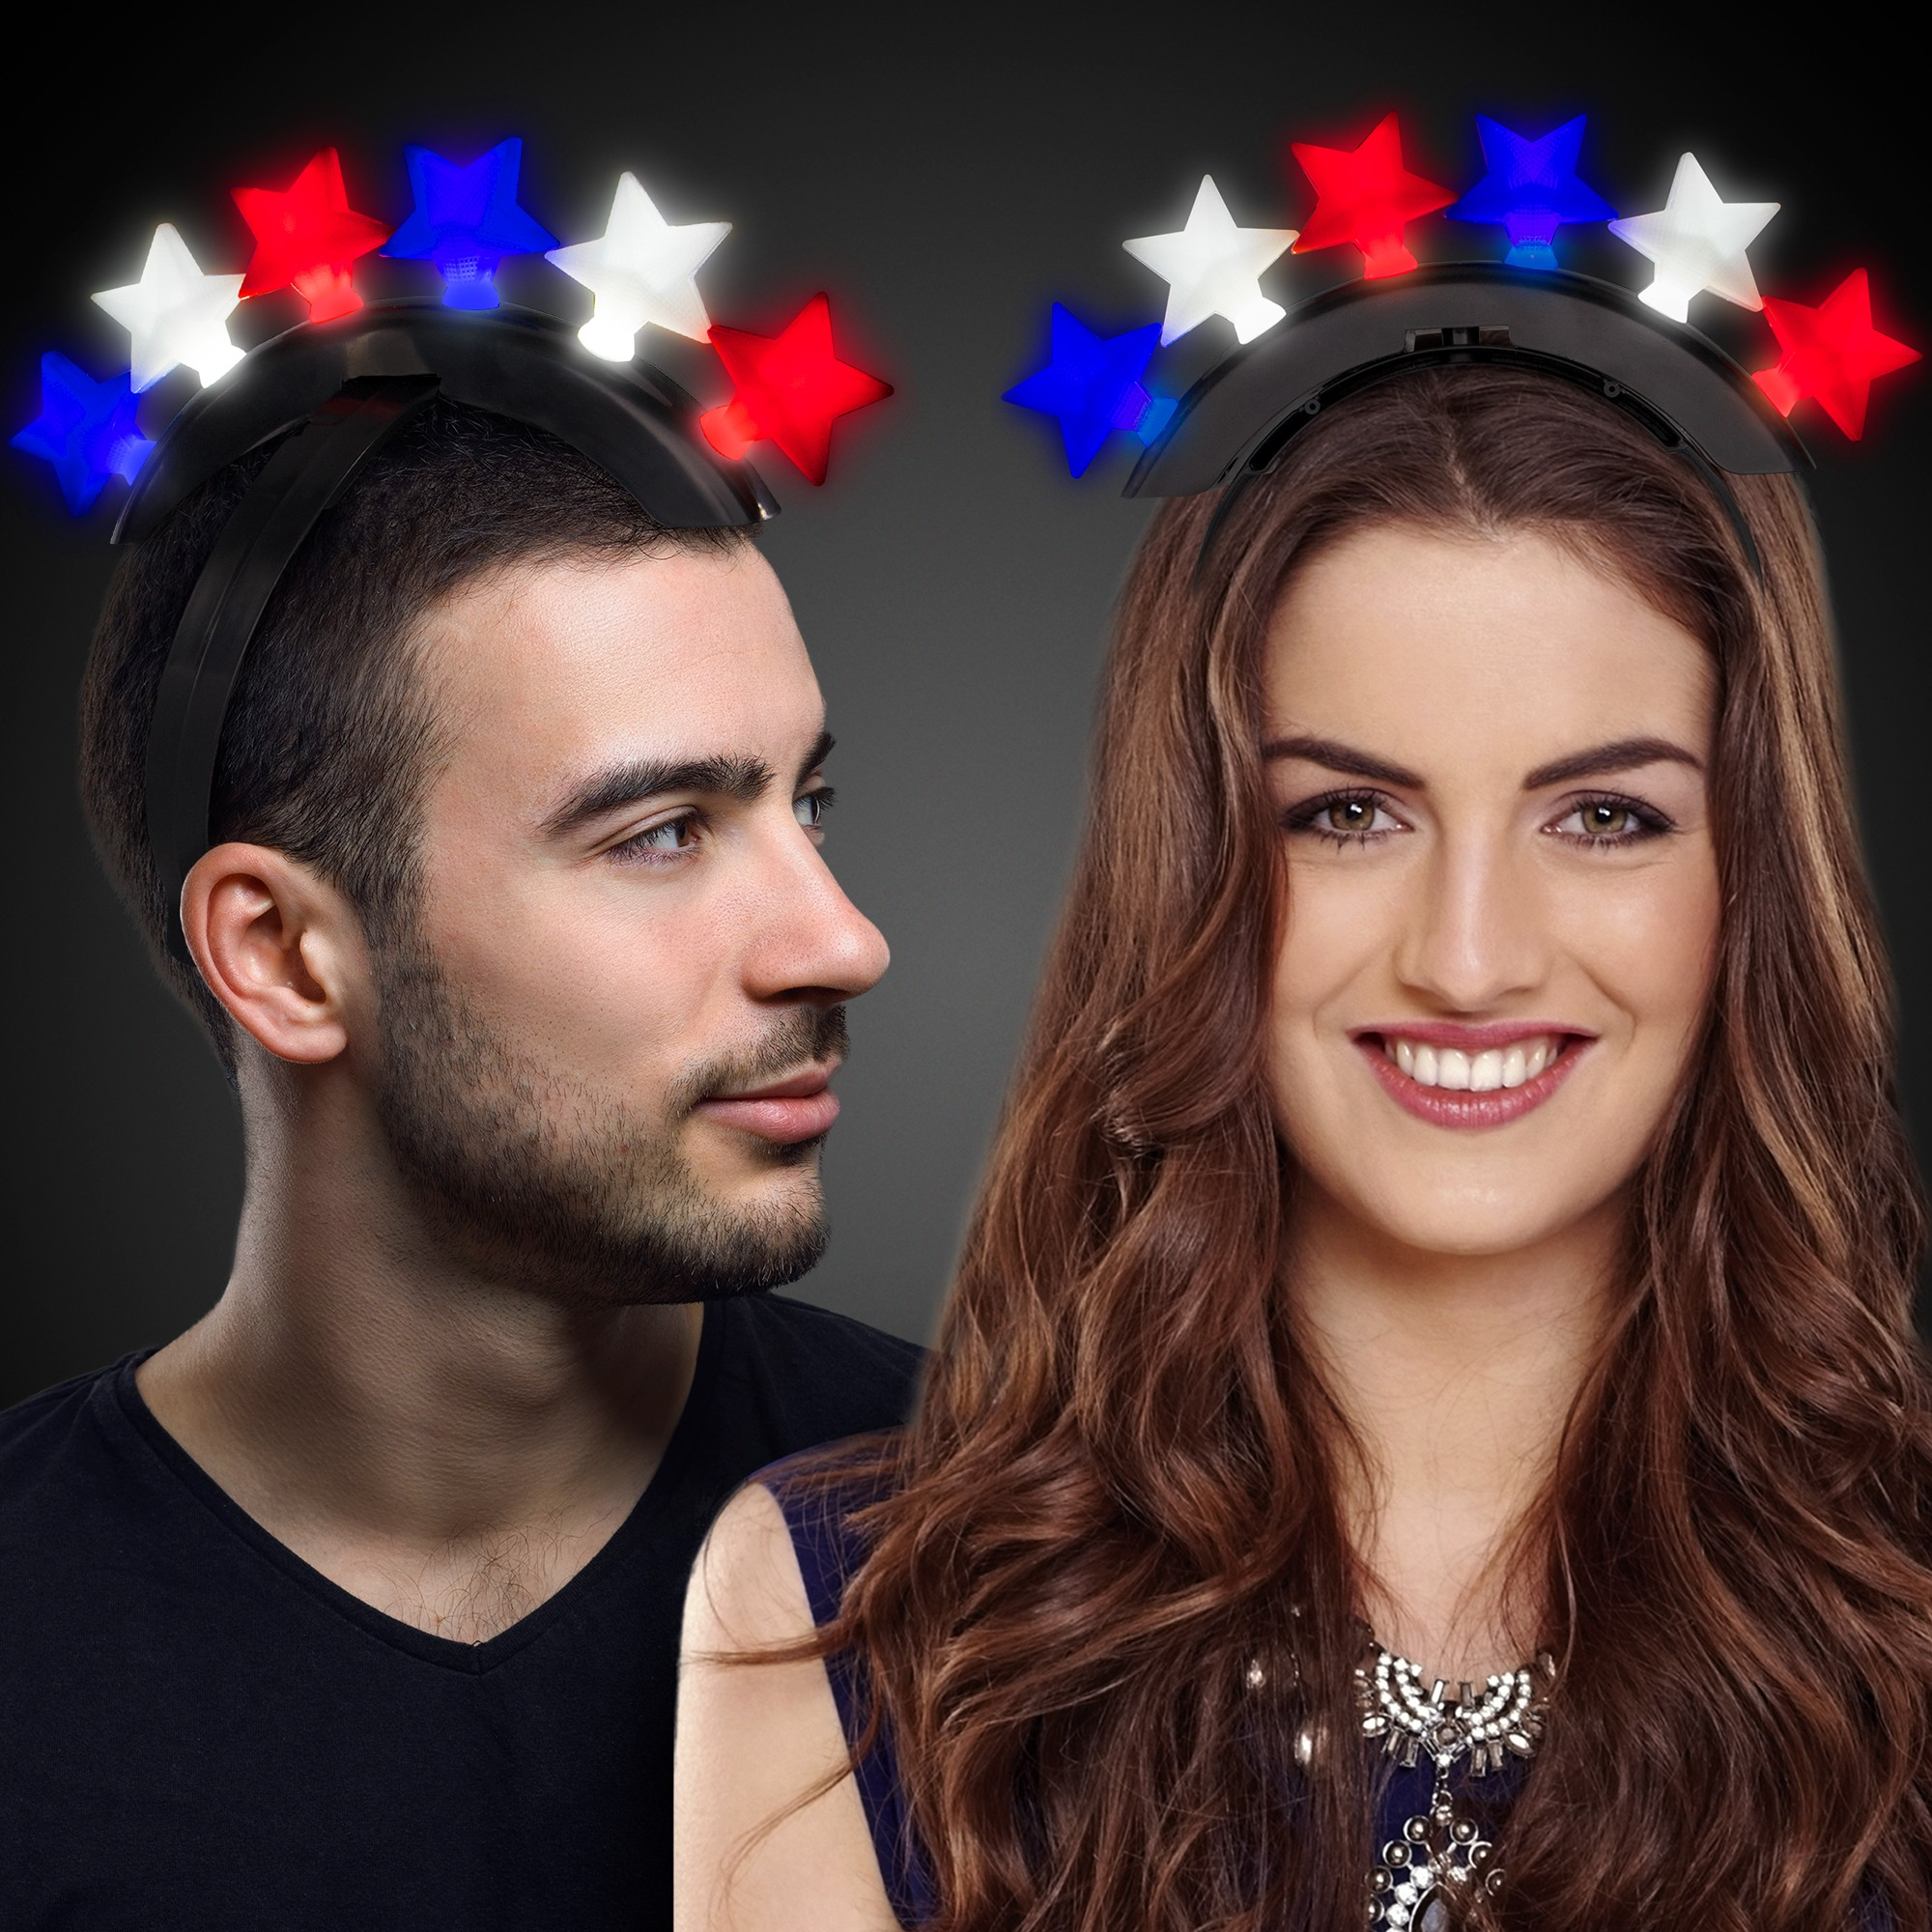 LED Patriotic Stars Headband